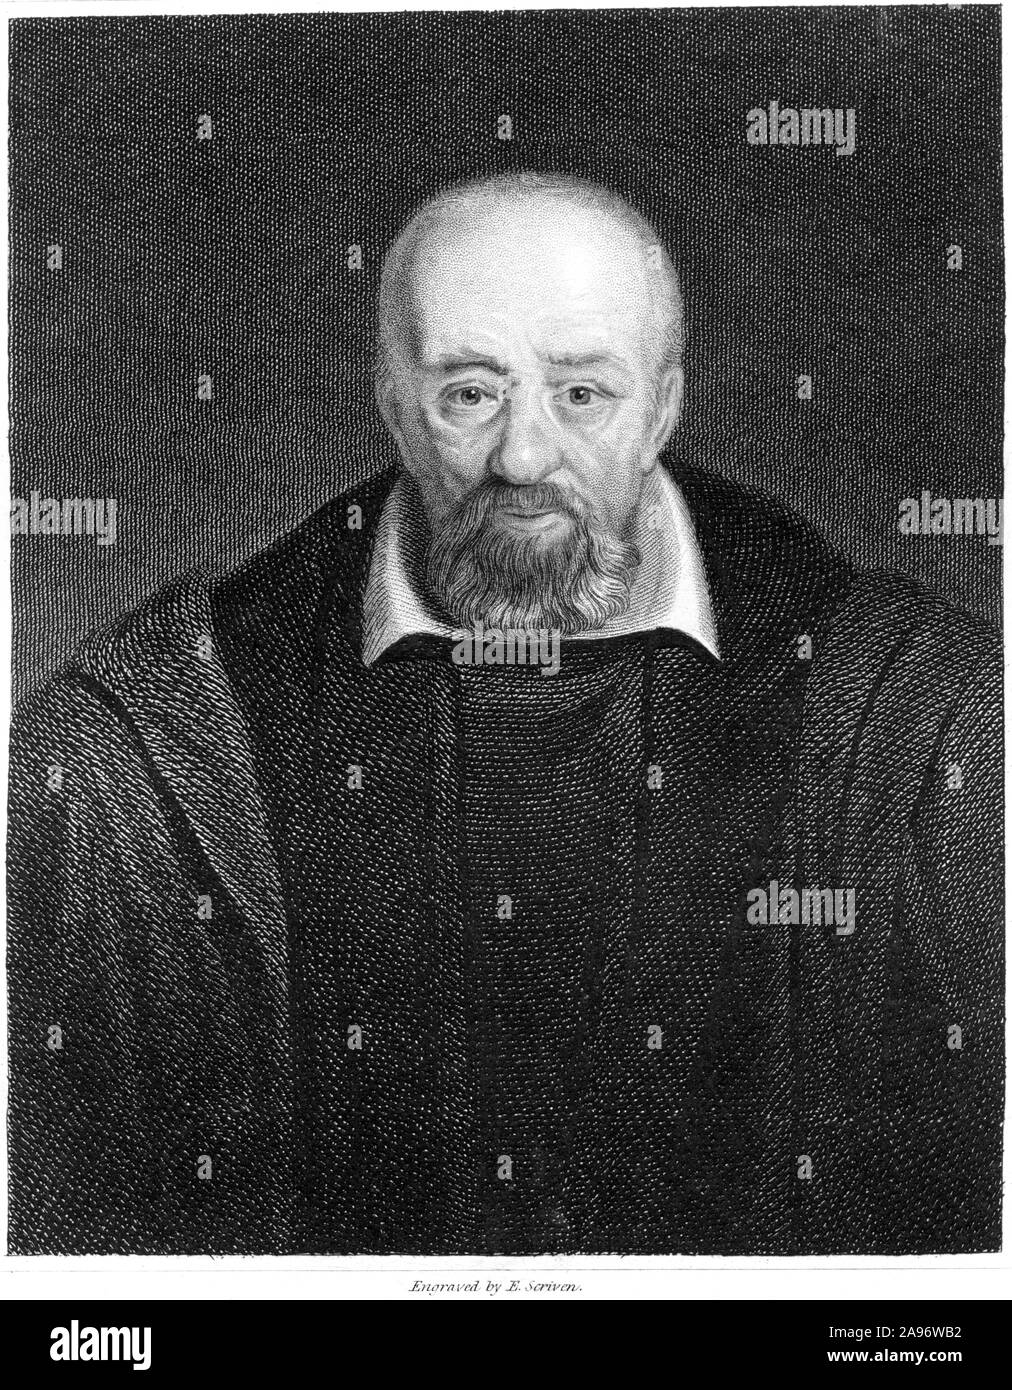 An engraving of George Buchanan scanned at high resolution from a book printed in 1859. . Stock Photo